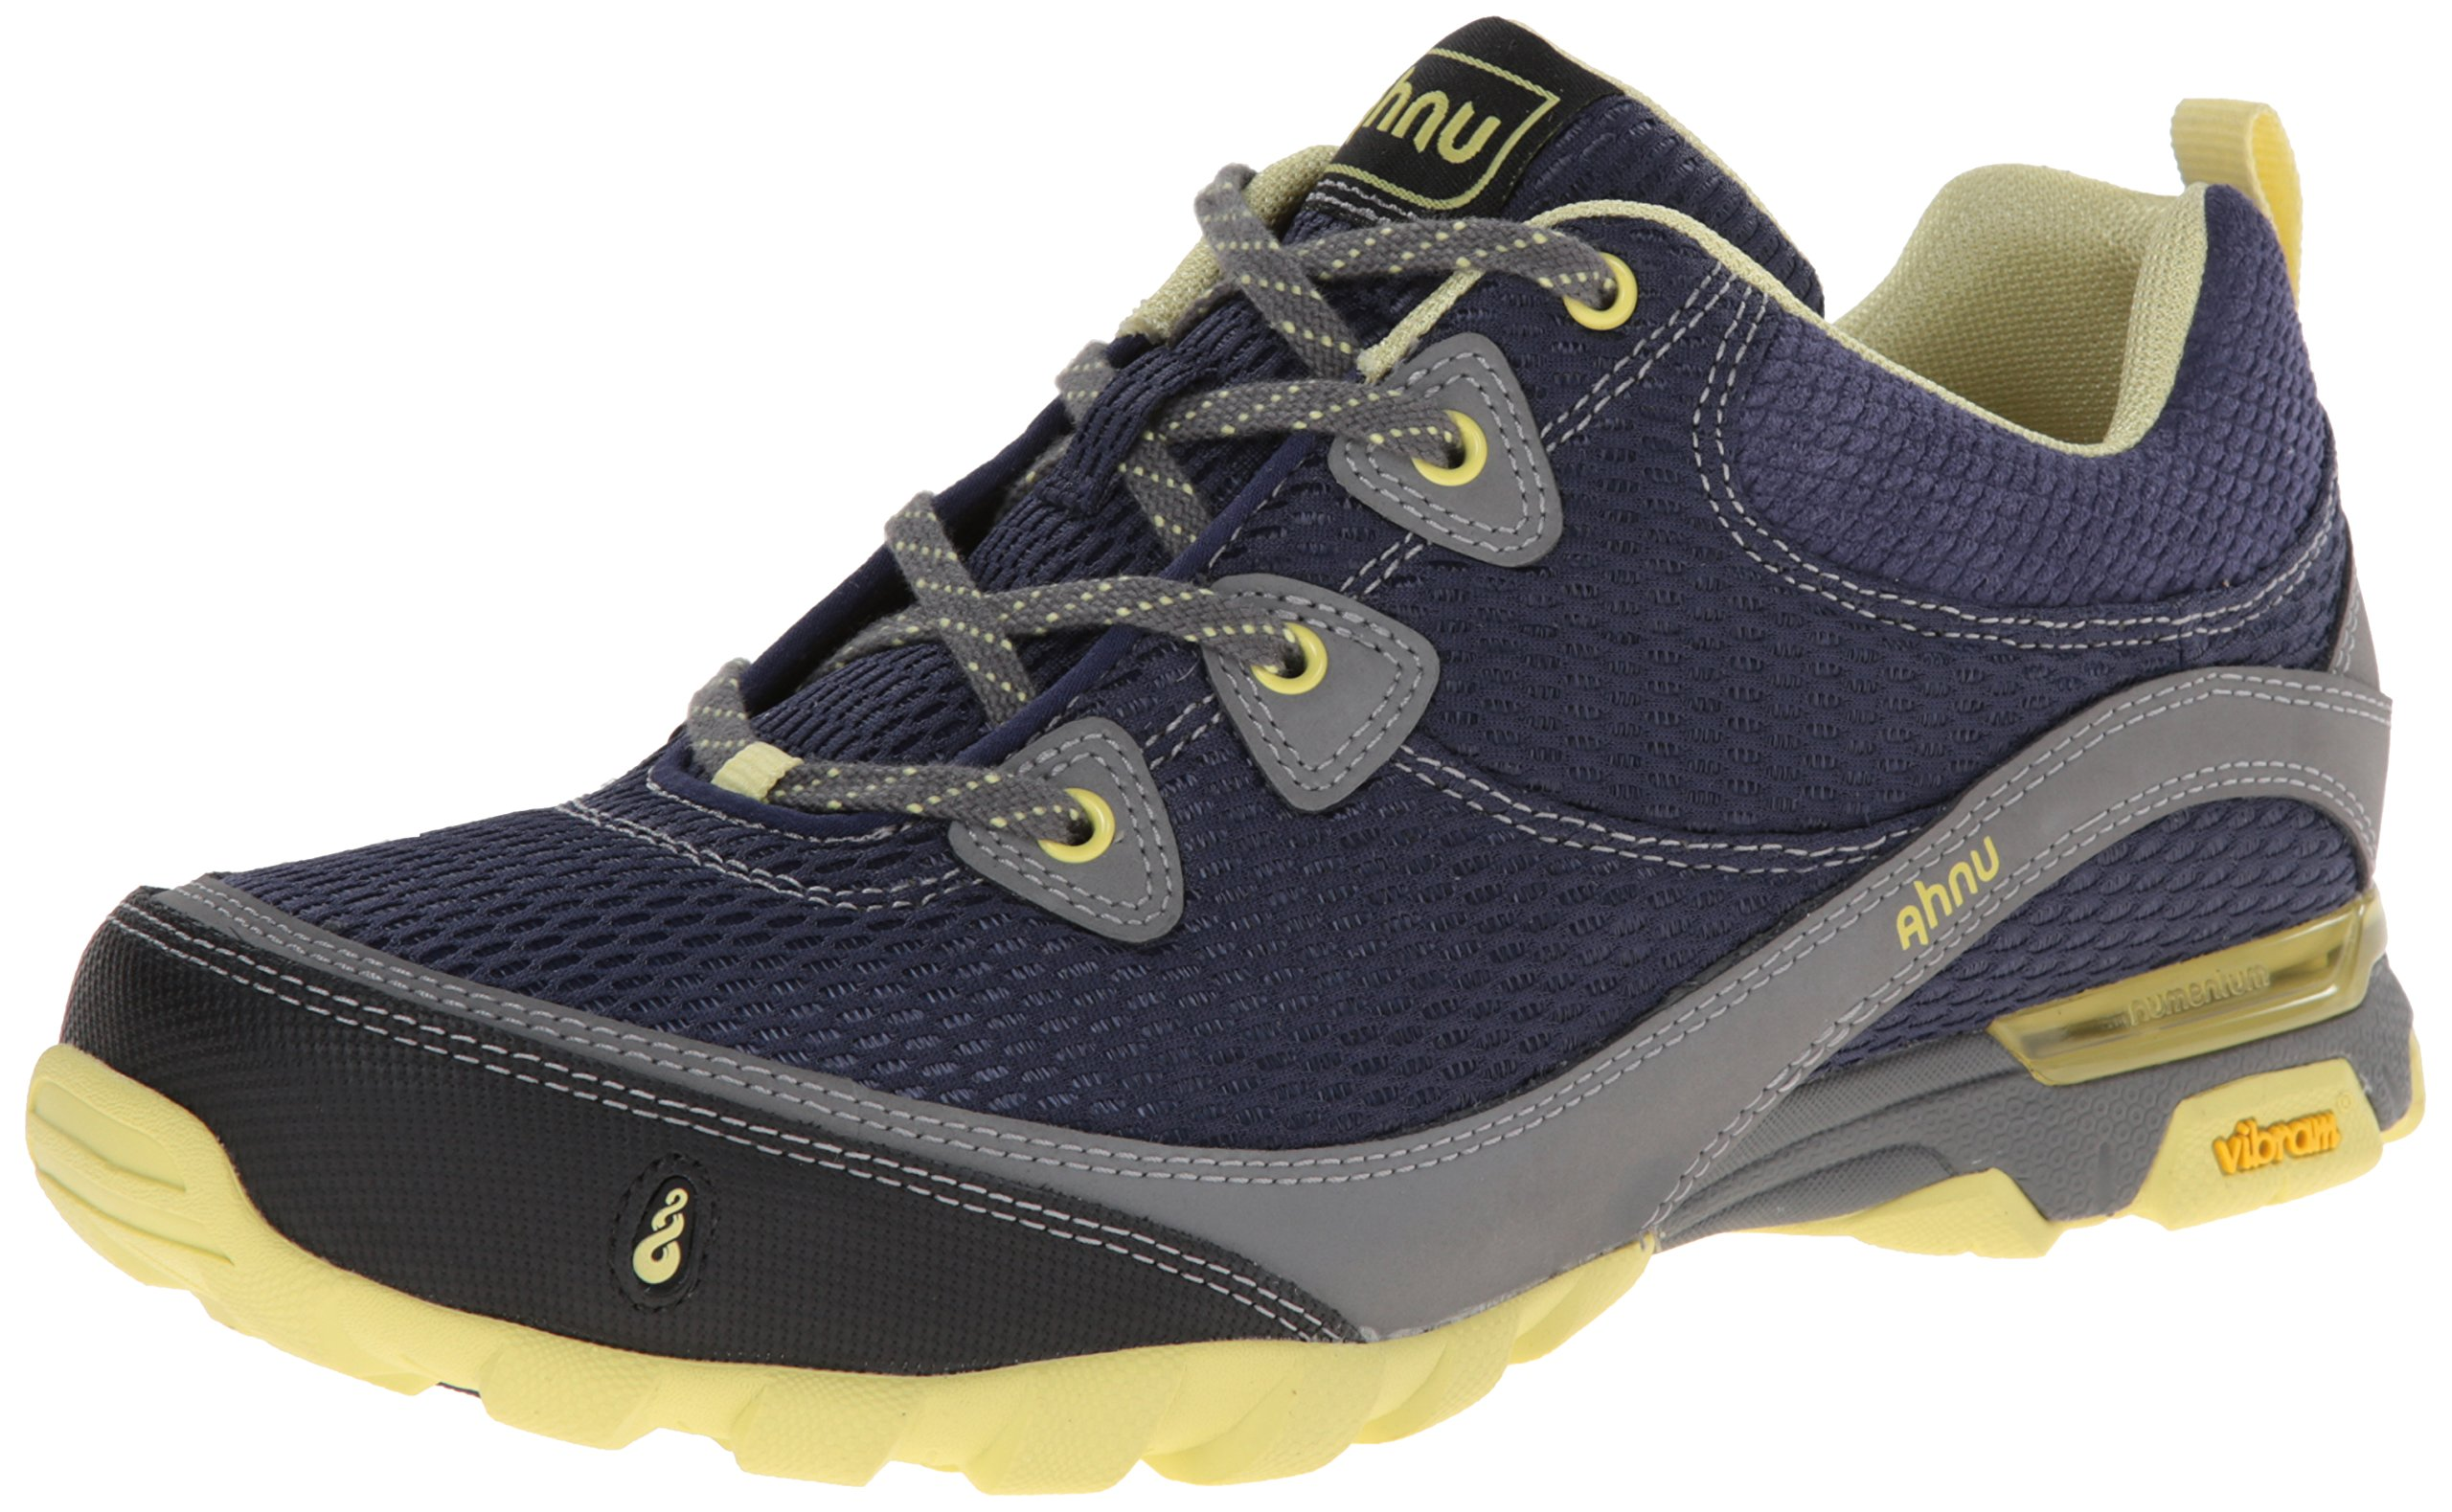 Ahnu Women's Sugarpine Air Mesh Hiking Shoe,Astral Aura,7.5 M US by Ahnu